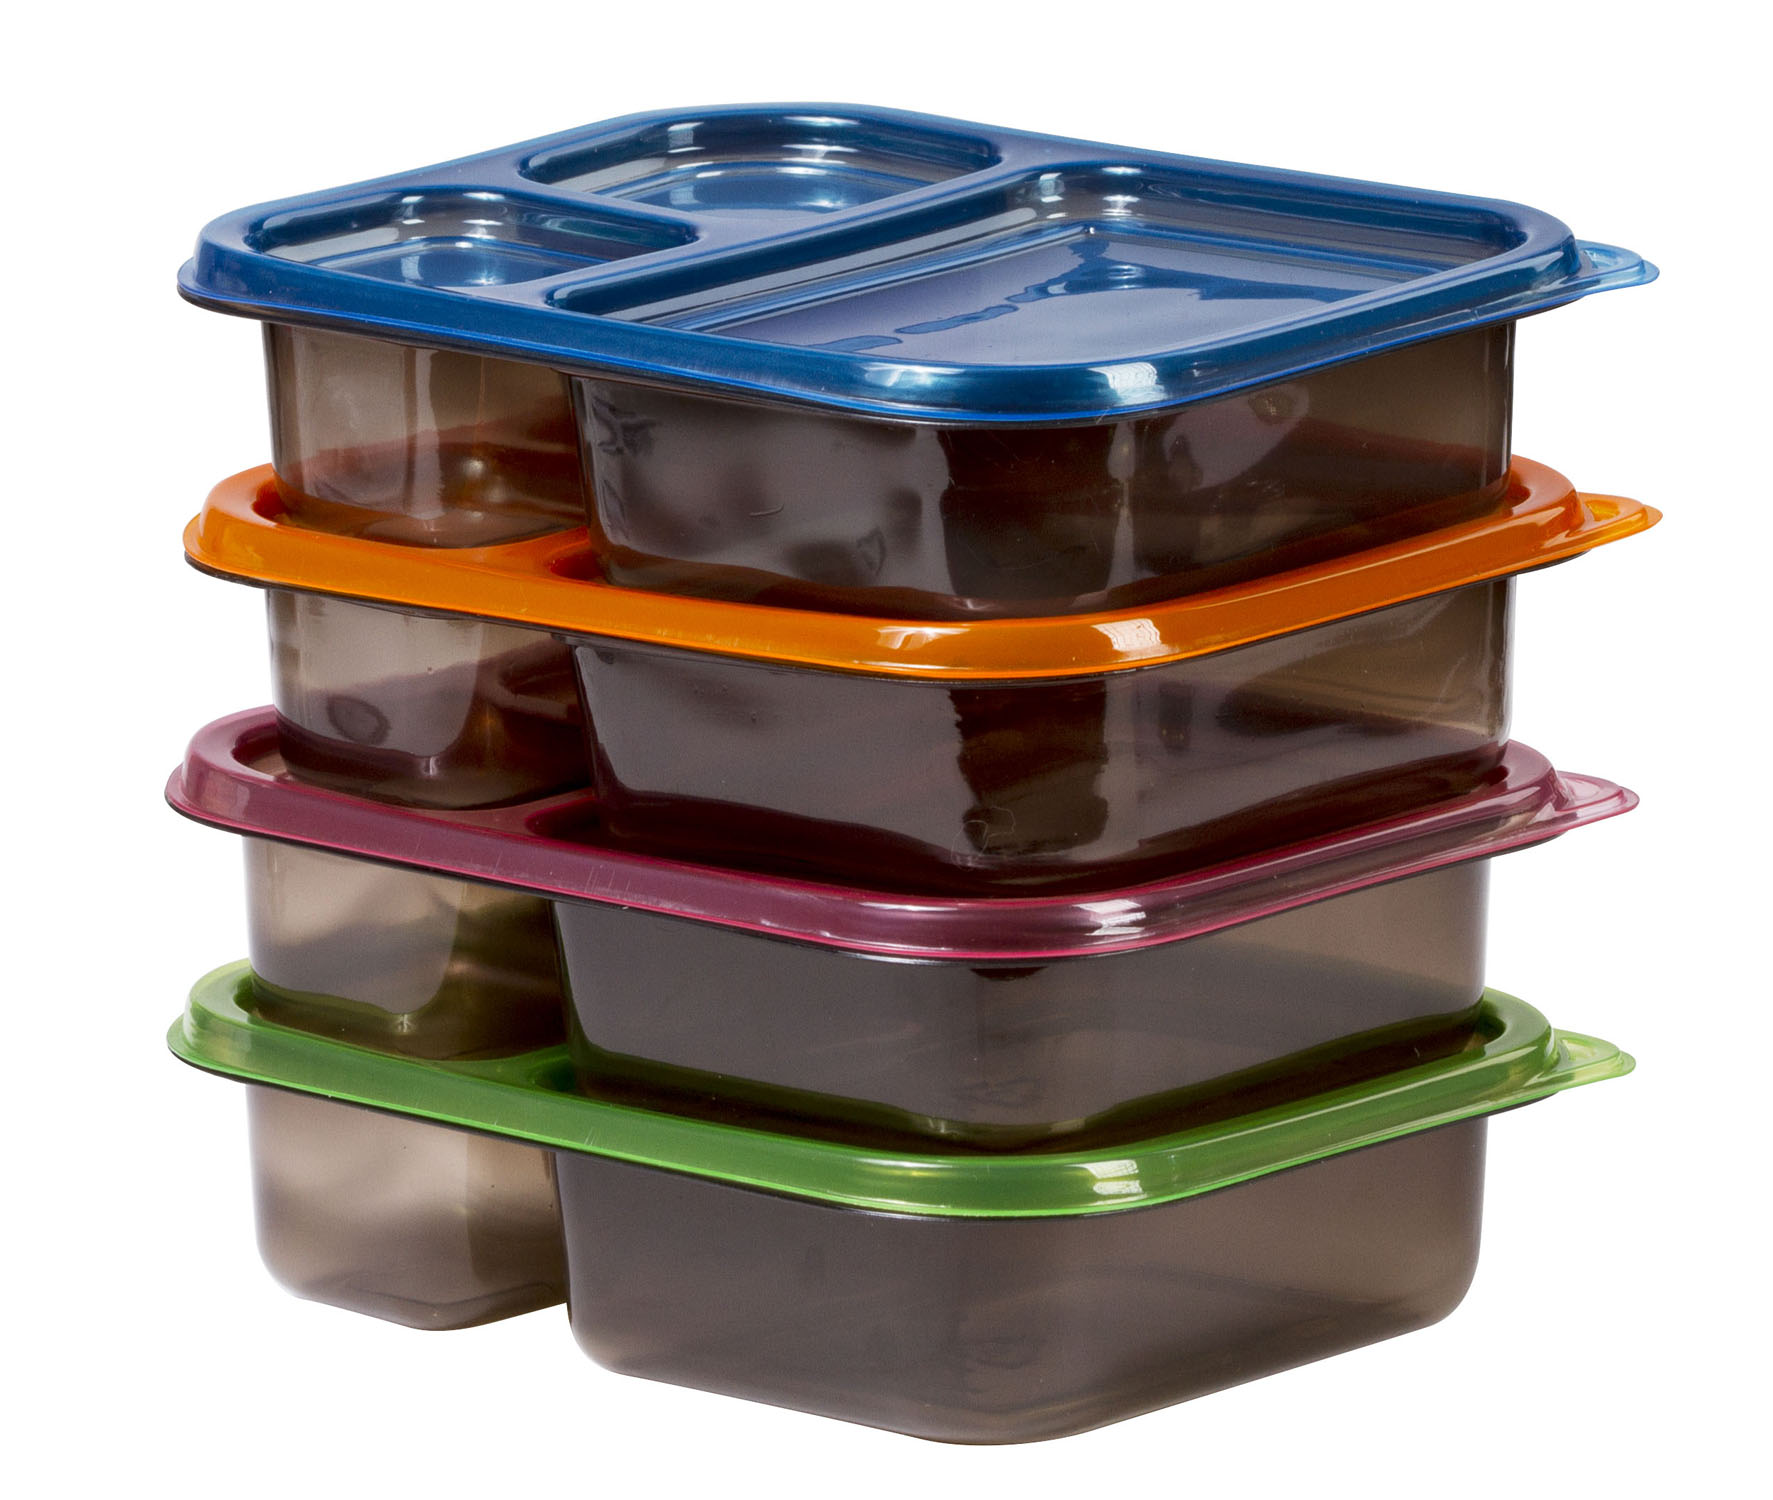 4 Meal Prep Containers 3 Compartment Plastic Bento Food Storage Set 3